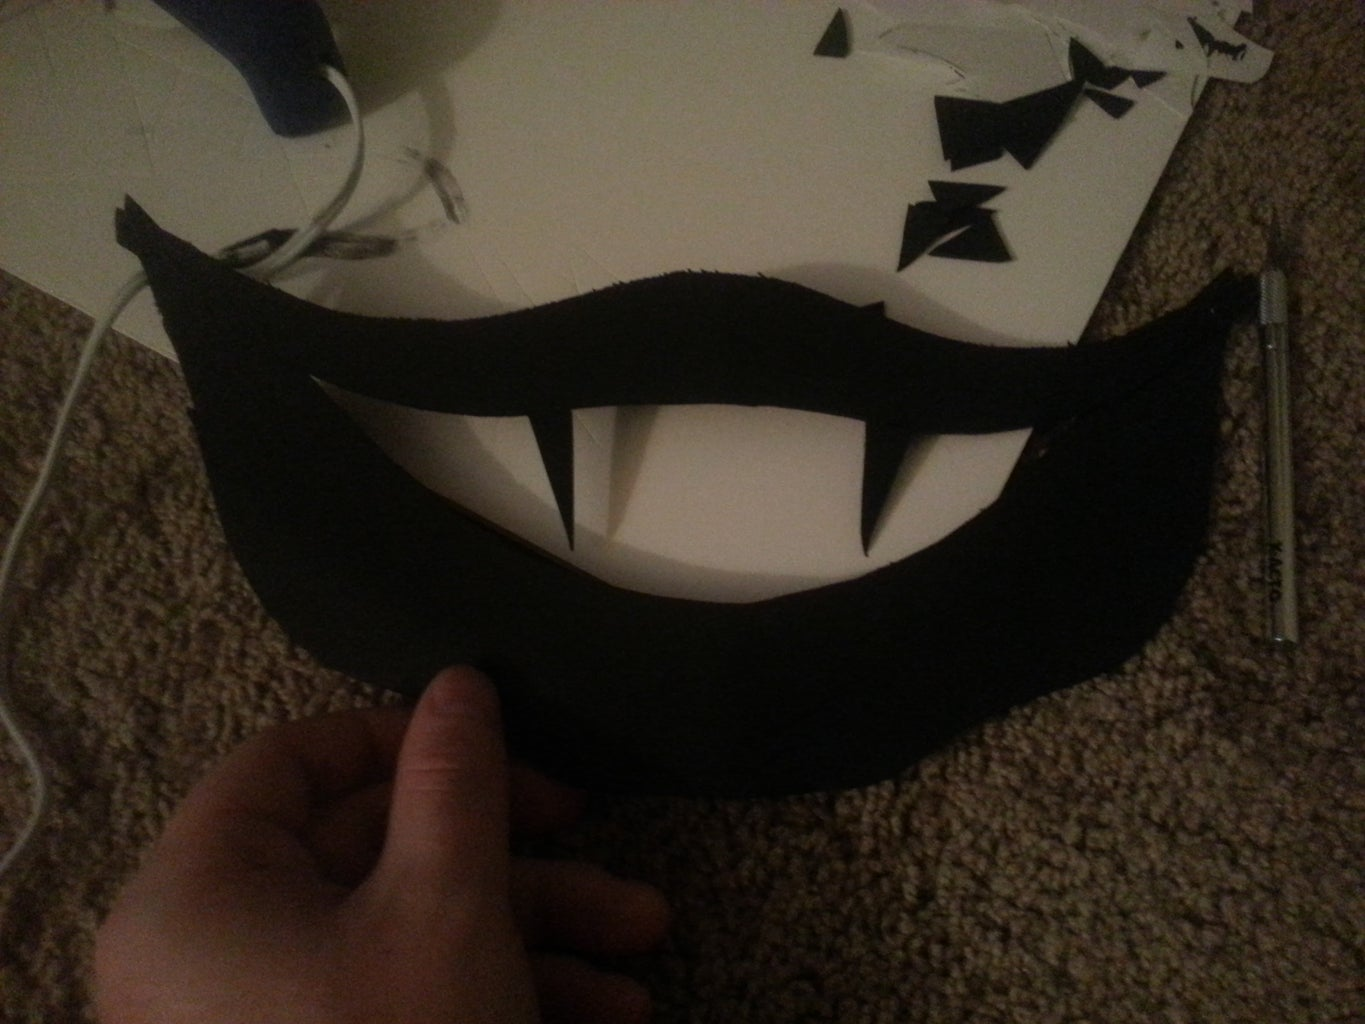 The Face (Part One - Mouth Build)